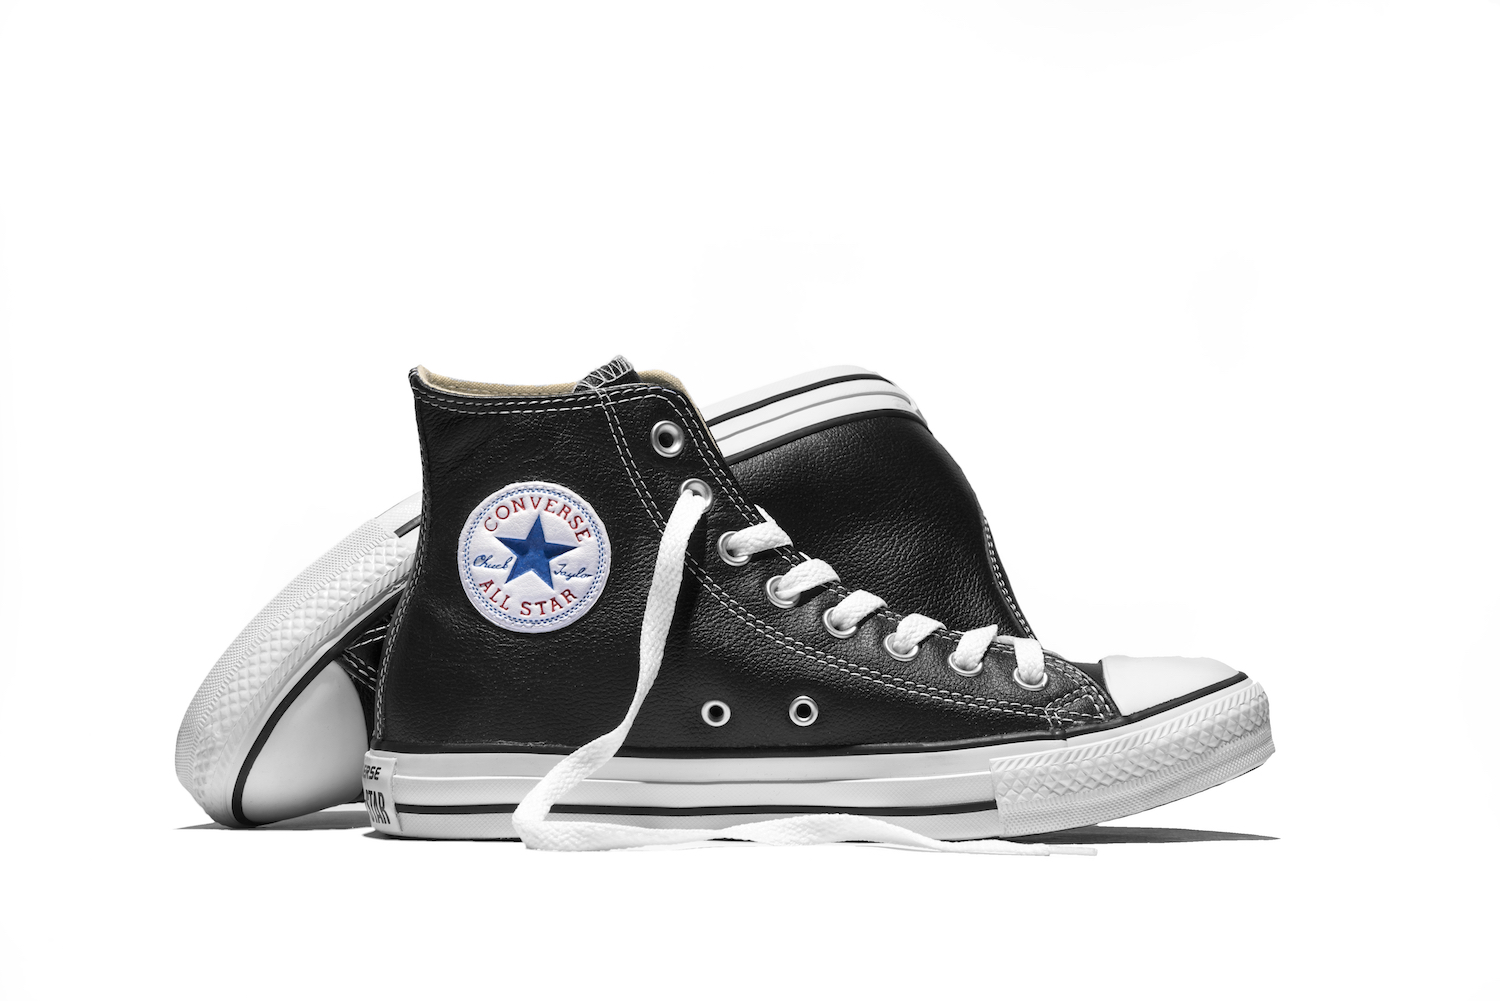 57d5734ae CONVERSE CHUCK TAYLOR ALL STAR LEATHER NOW AVAILABLE AT CONVERSE ...